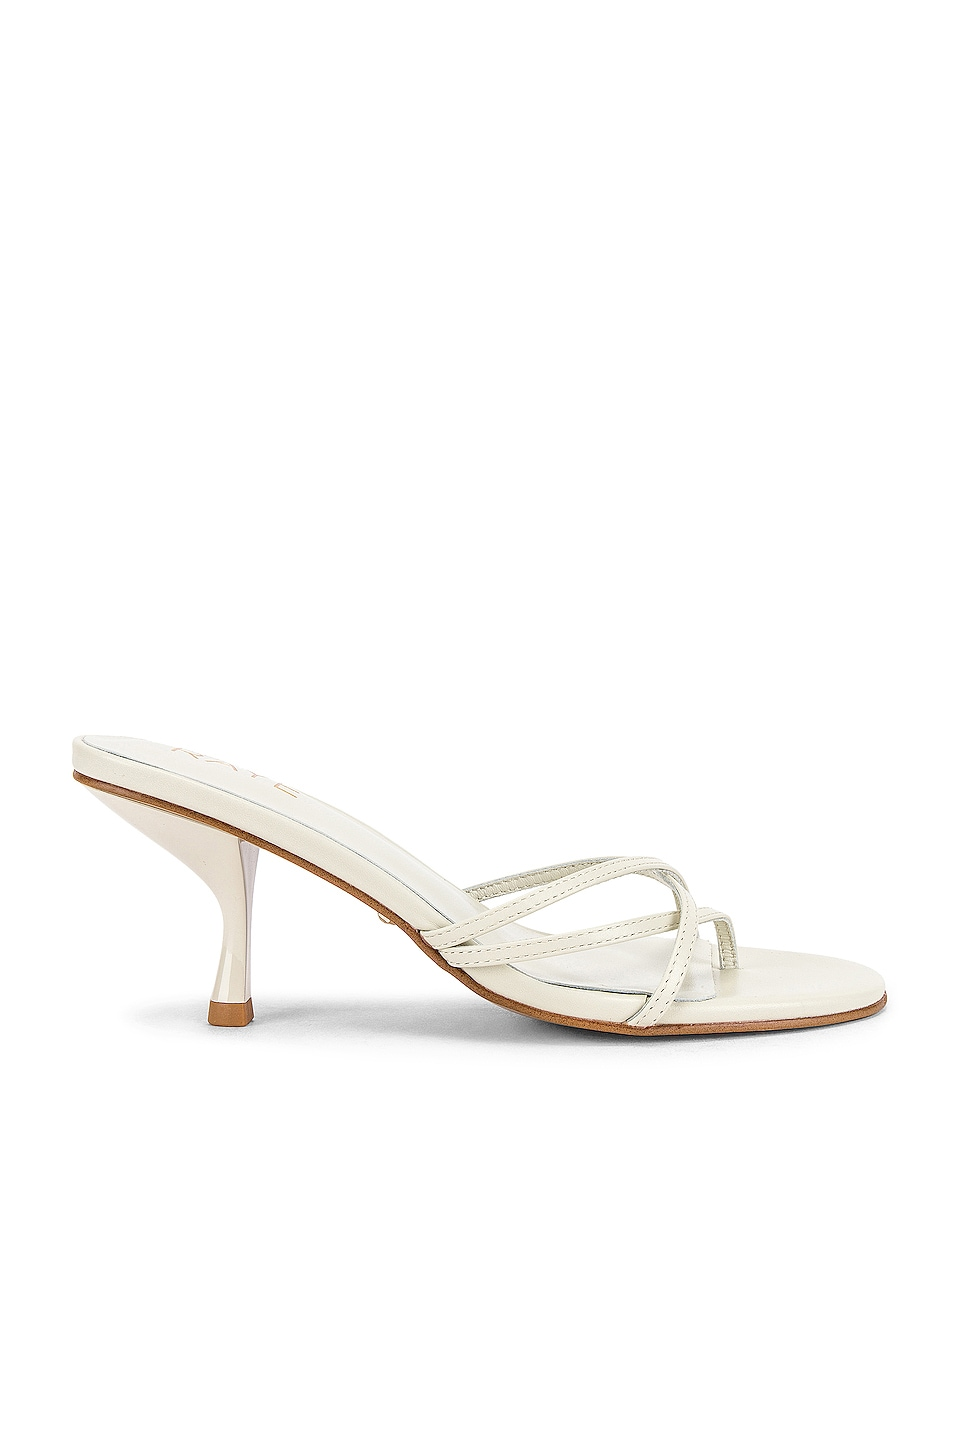 RAYE Toffee Sandal in White